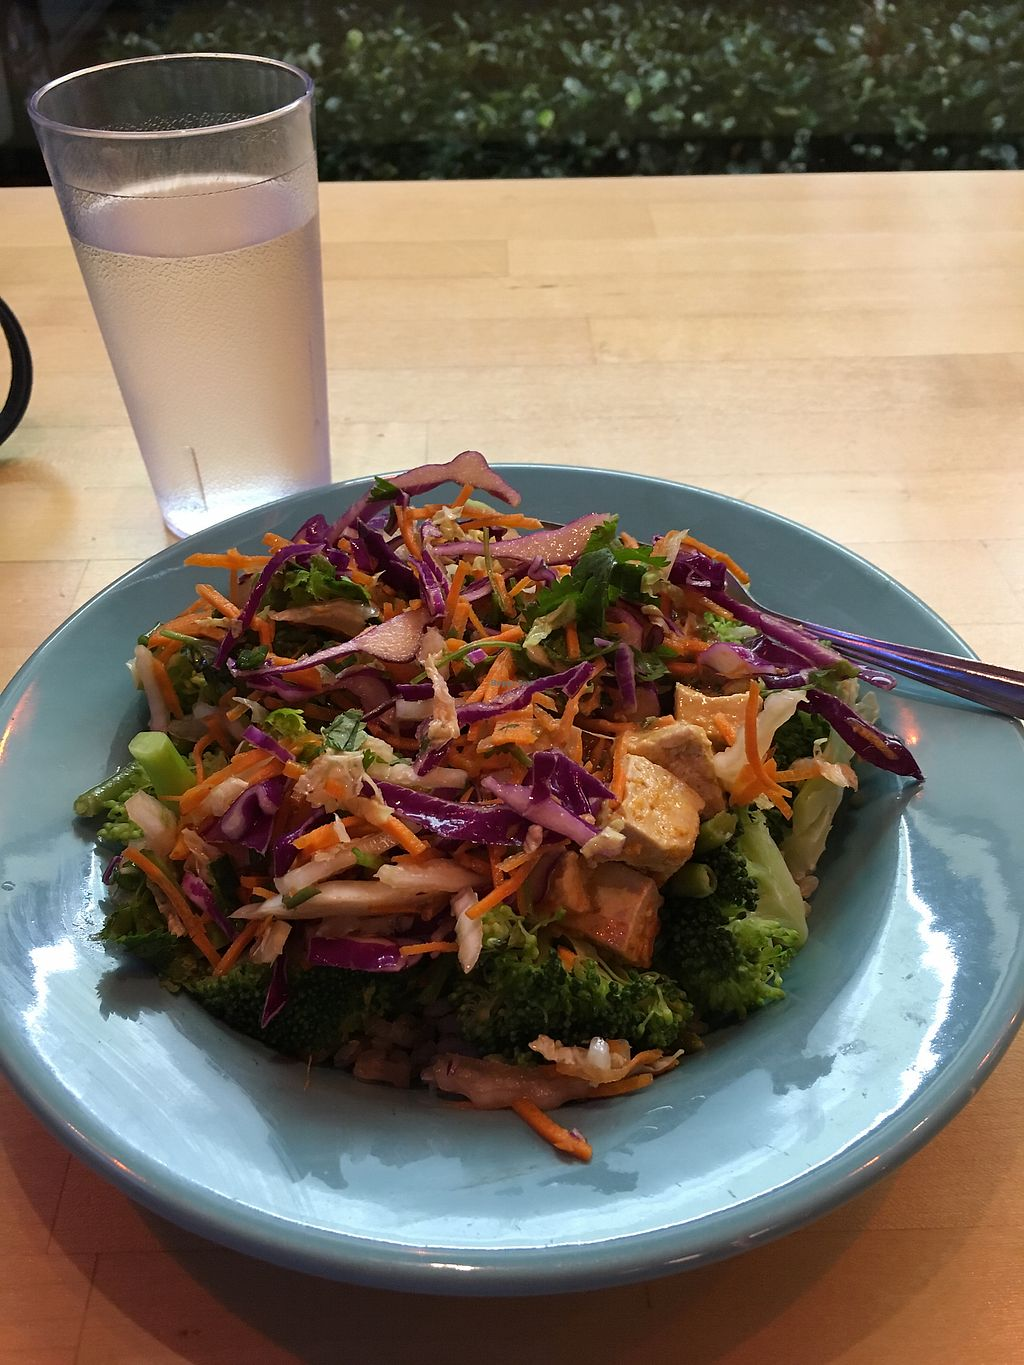 """Photo of Laughing Planet Cafe  by <a href=""""/members/profile/DianeH"""">DianeH</a> <br/>Thai Bowl <br/> November 3, 2017  - <a href='/contact/abuse/image/51224/321326'>Report</a>"""